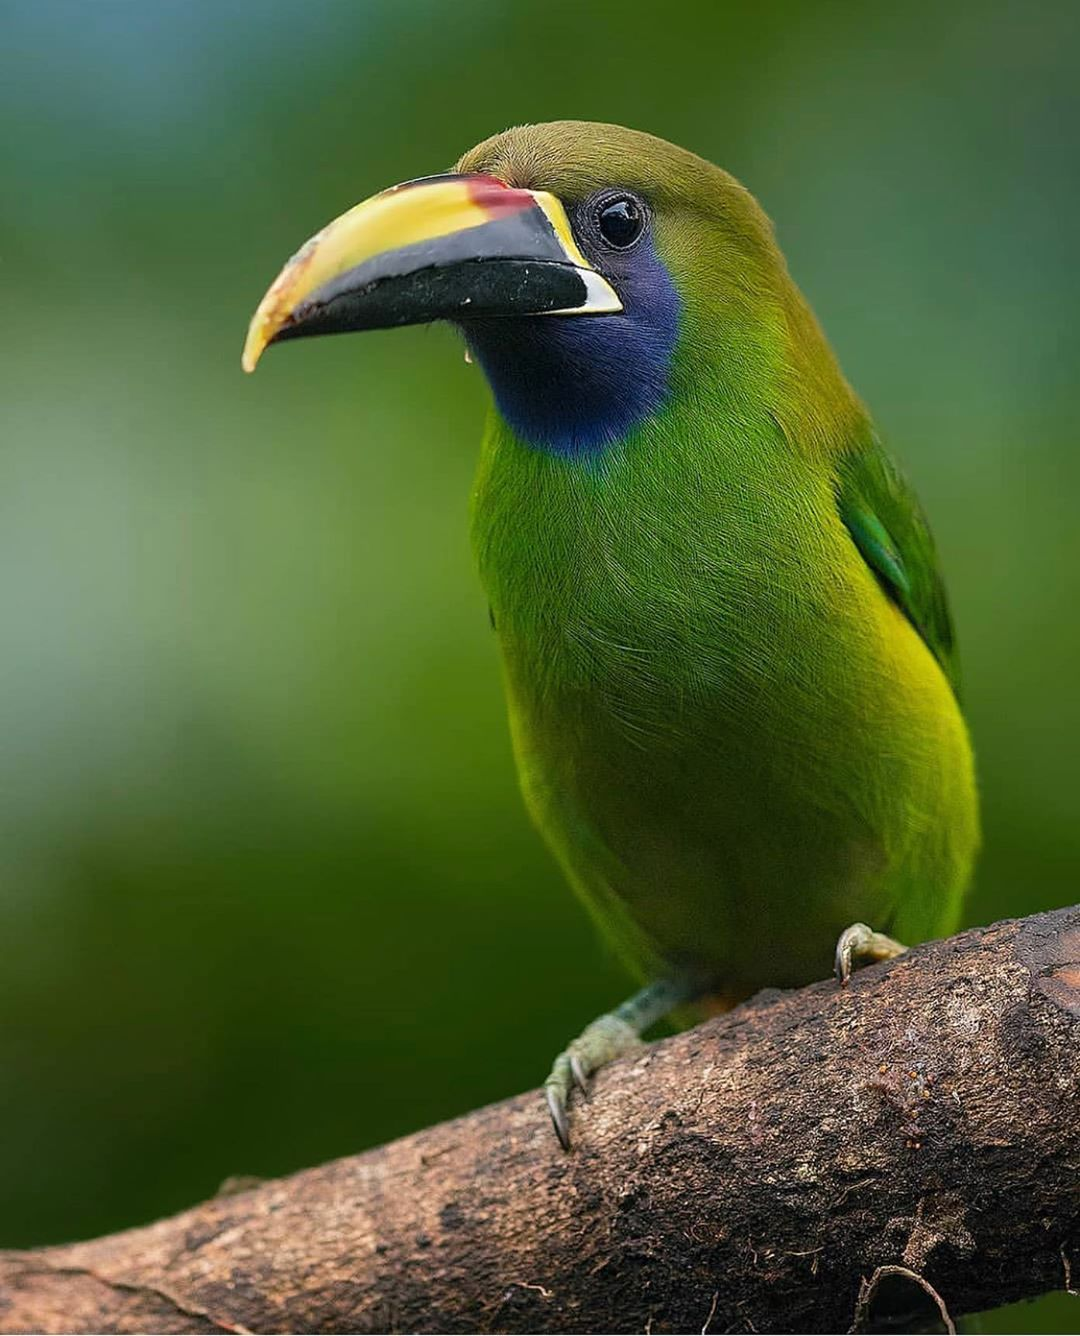 Tropical Photo Tours On Instagram One Of The Beautiful Toucans You Will See During A Trip With Us To Costa Rican Is This Emerald Toucanet Our Work Aves Tucan